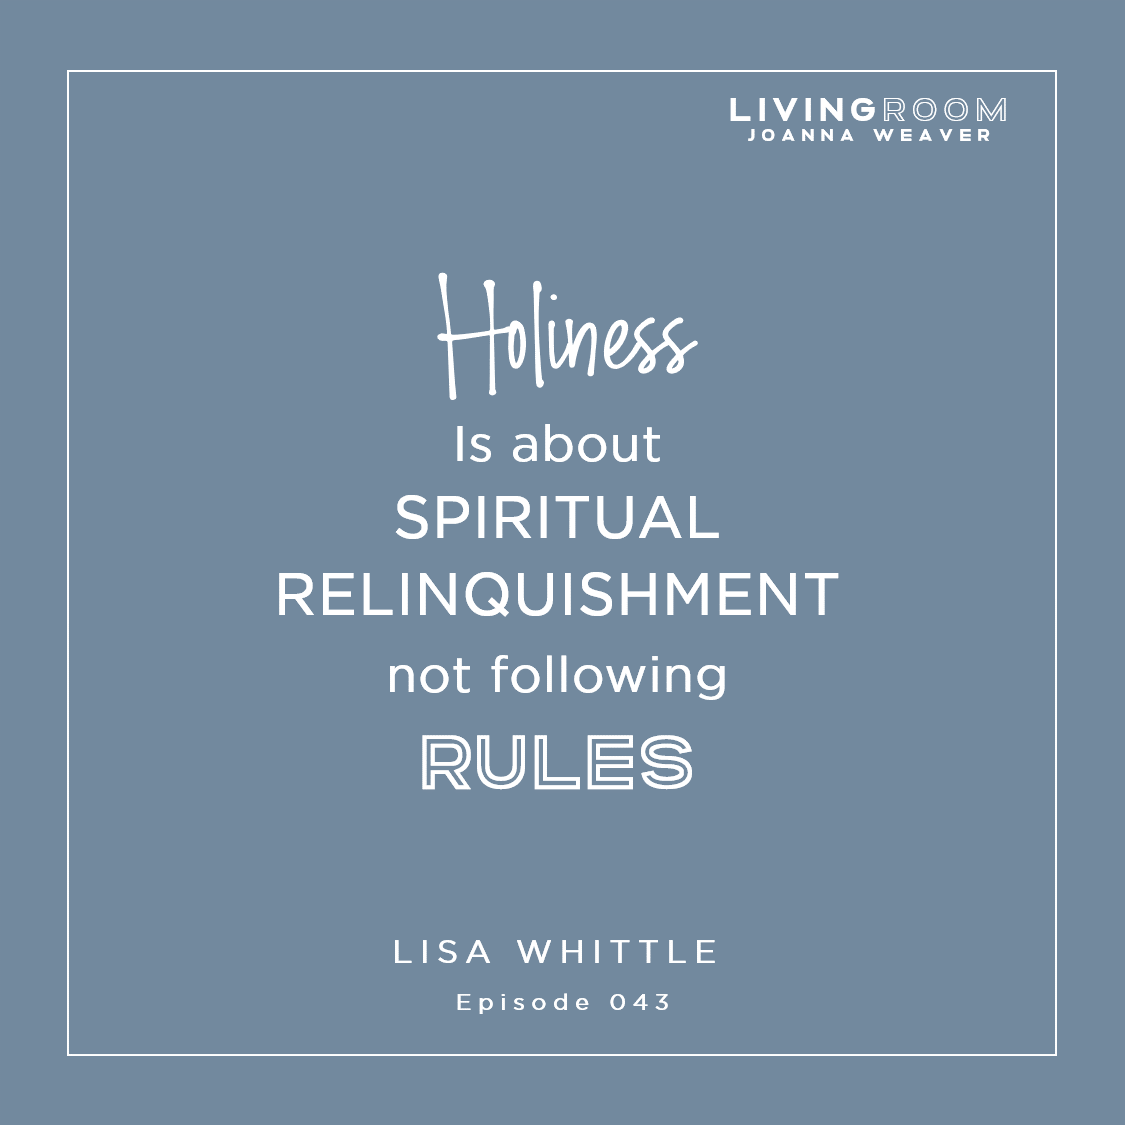 """Holiness is about spiritual relinquishment not following rules"" - Lisa Whittle - TLR 043"